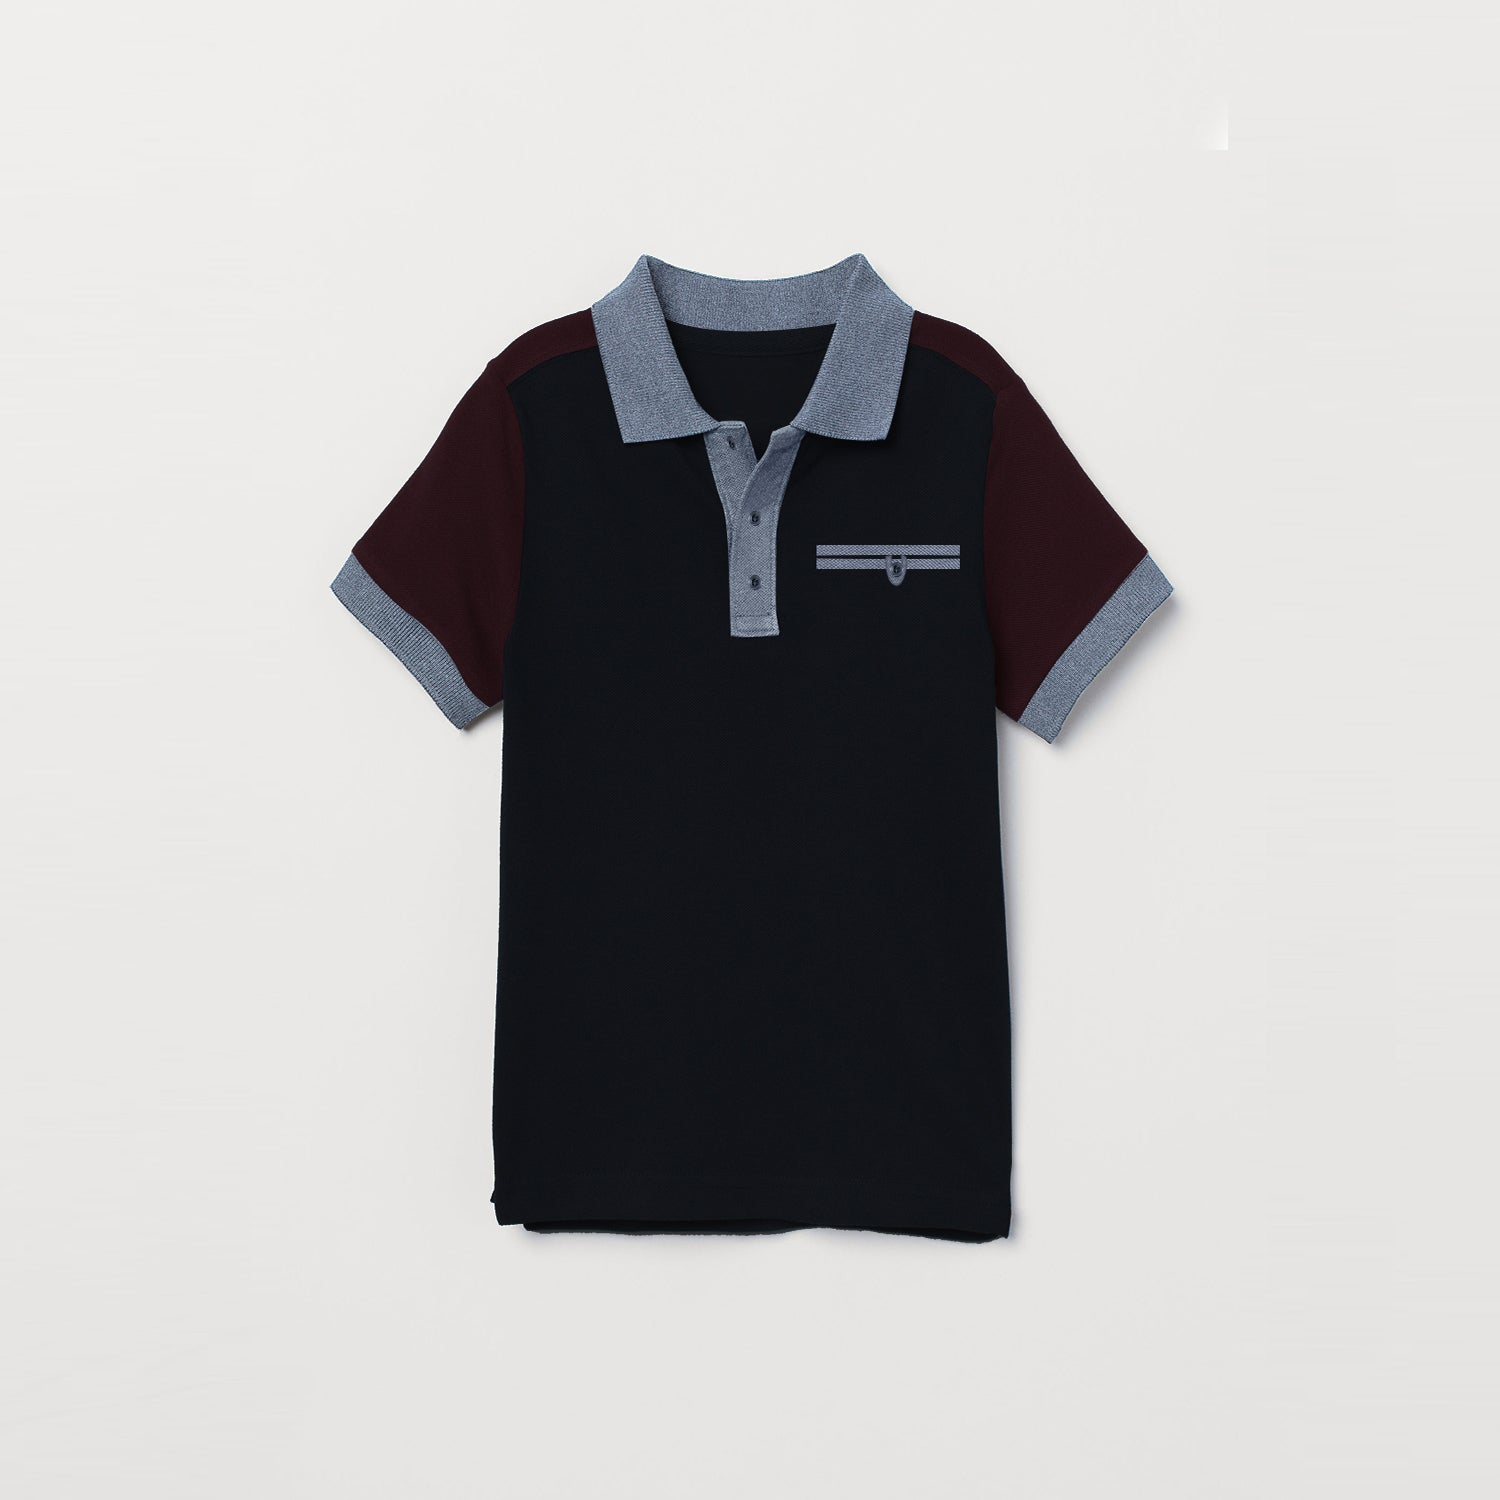 NEXT Single Jersey Polo Shirt For Kids-Black& Maroon-BE9359